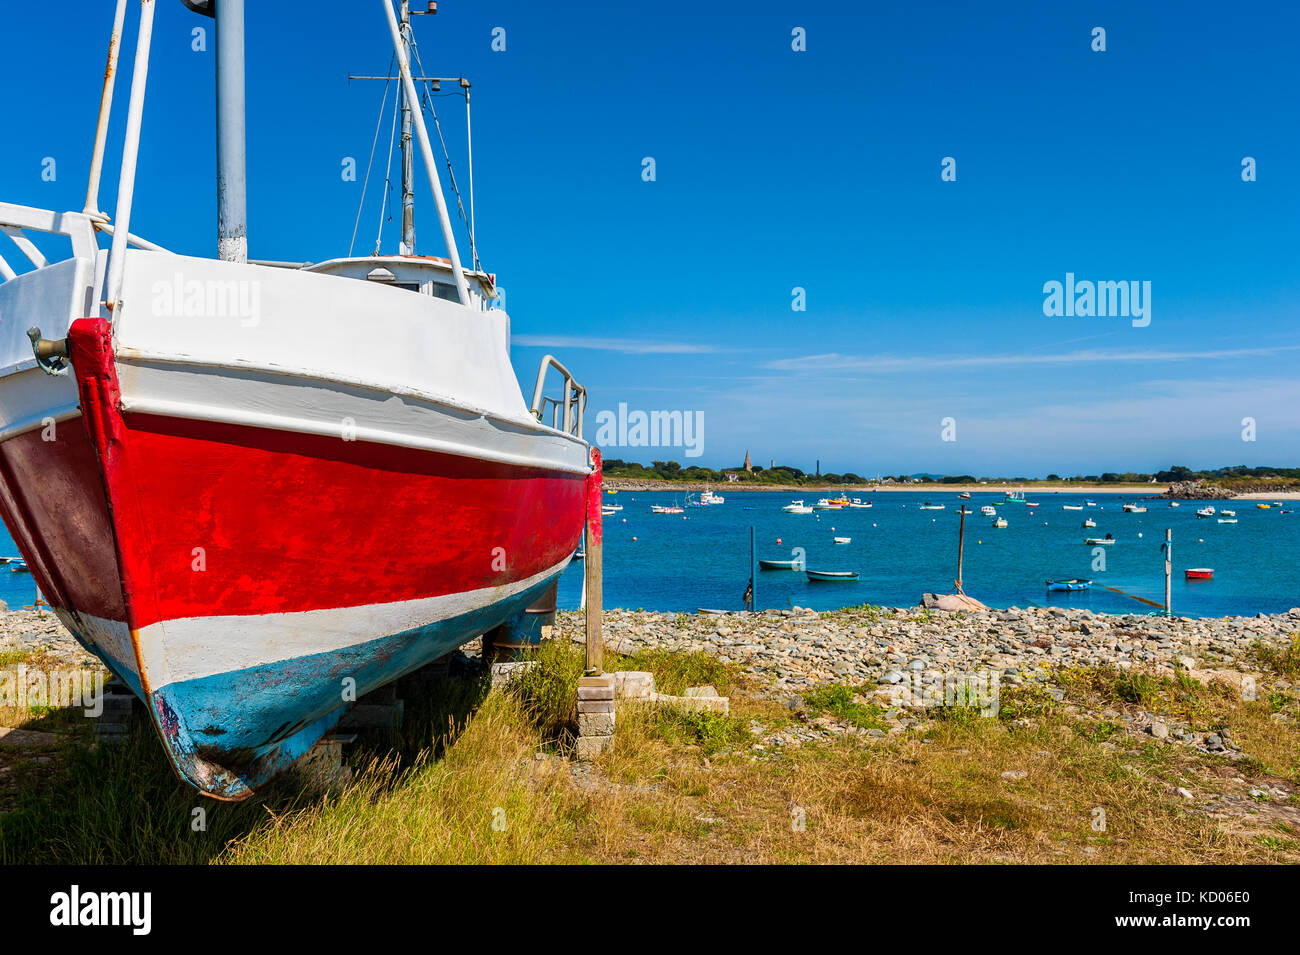 Fishing Boat on Shore in the Village of Vale, Guernsey, Channel Islands, UK on summer day Stock Photo